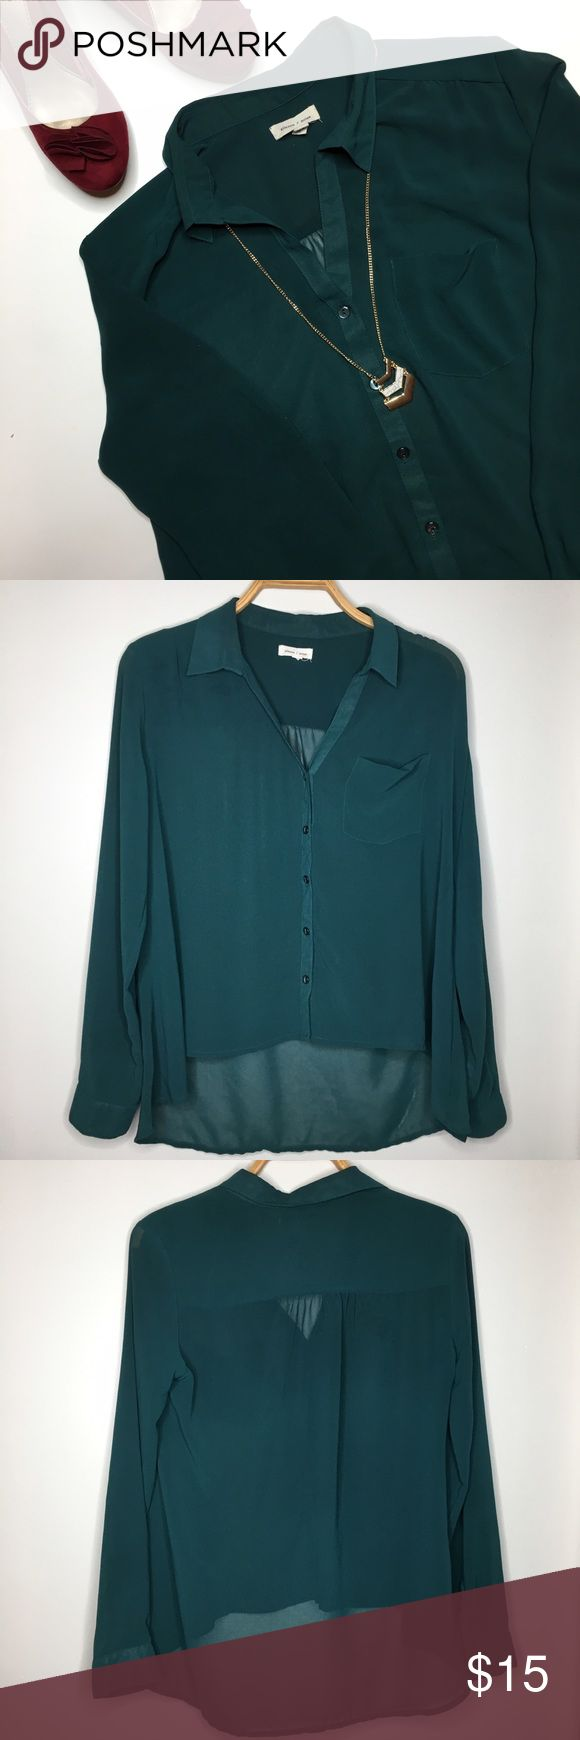 Urban Outfitters Silence + Noise Sheer Top Like new Urban Outfitters Silence + Noise sheer button down teal top with pocket. Size medium Urban Outfitters Tops